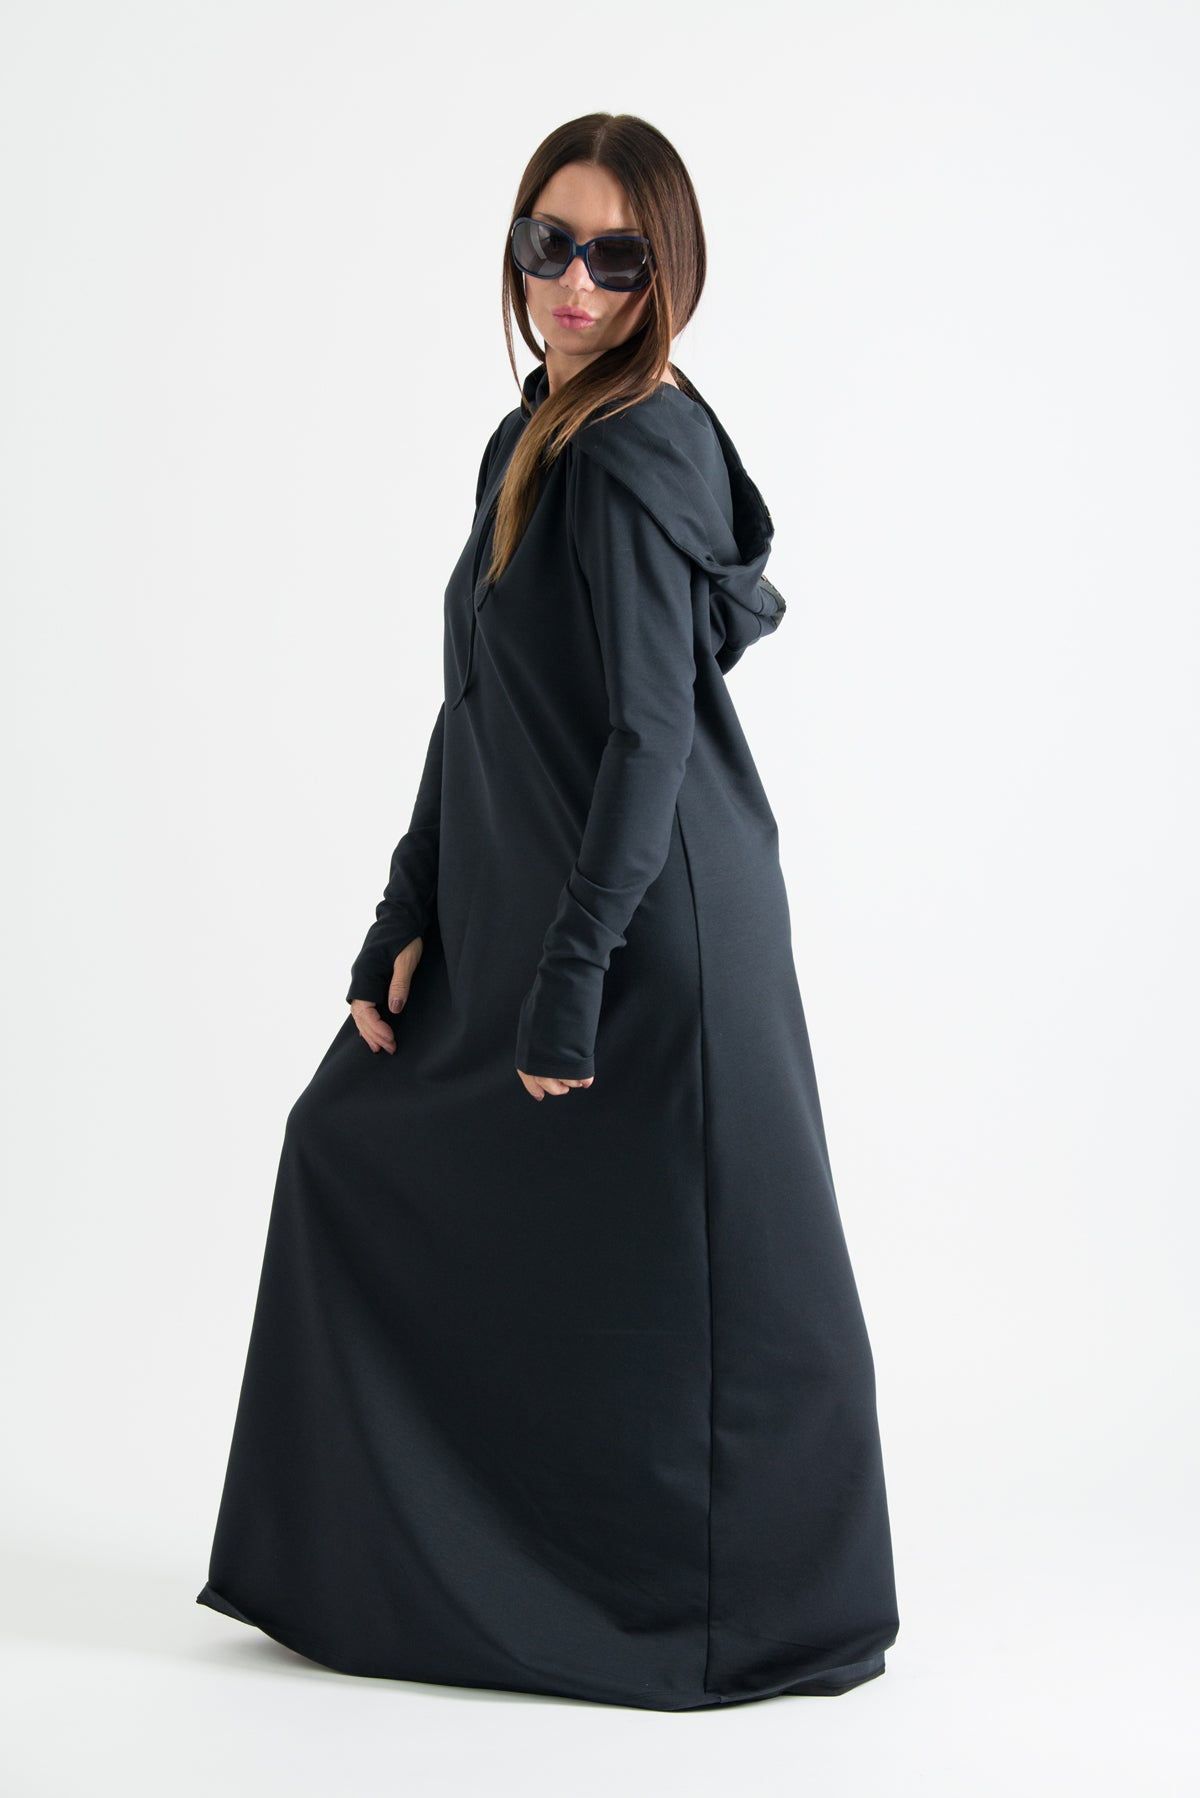 Black Long Hooded Trendy Dress, Dresses & Maxi Dresses